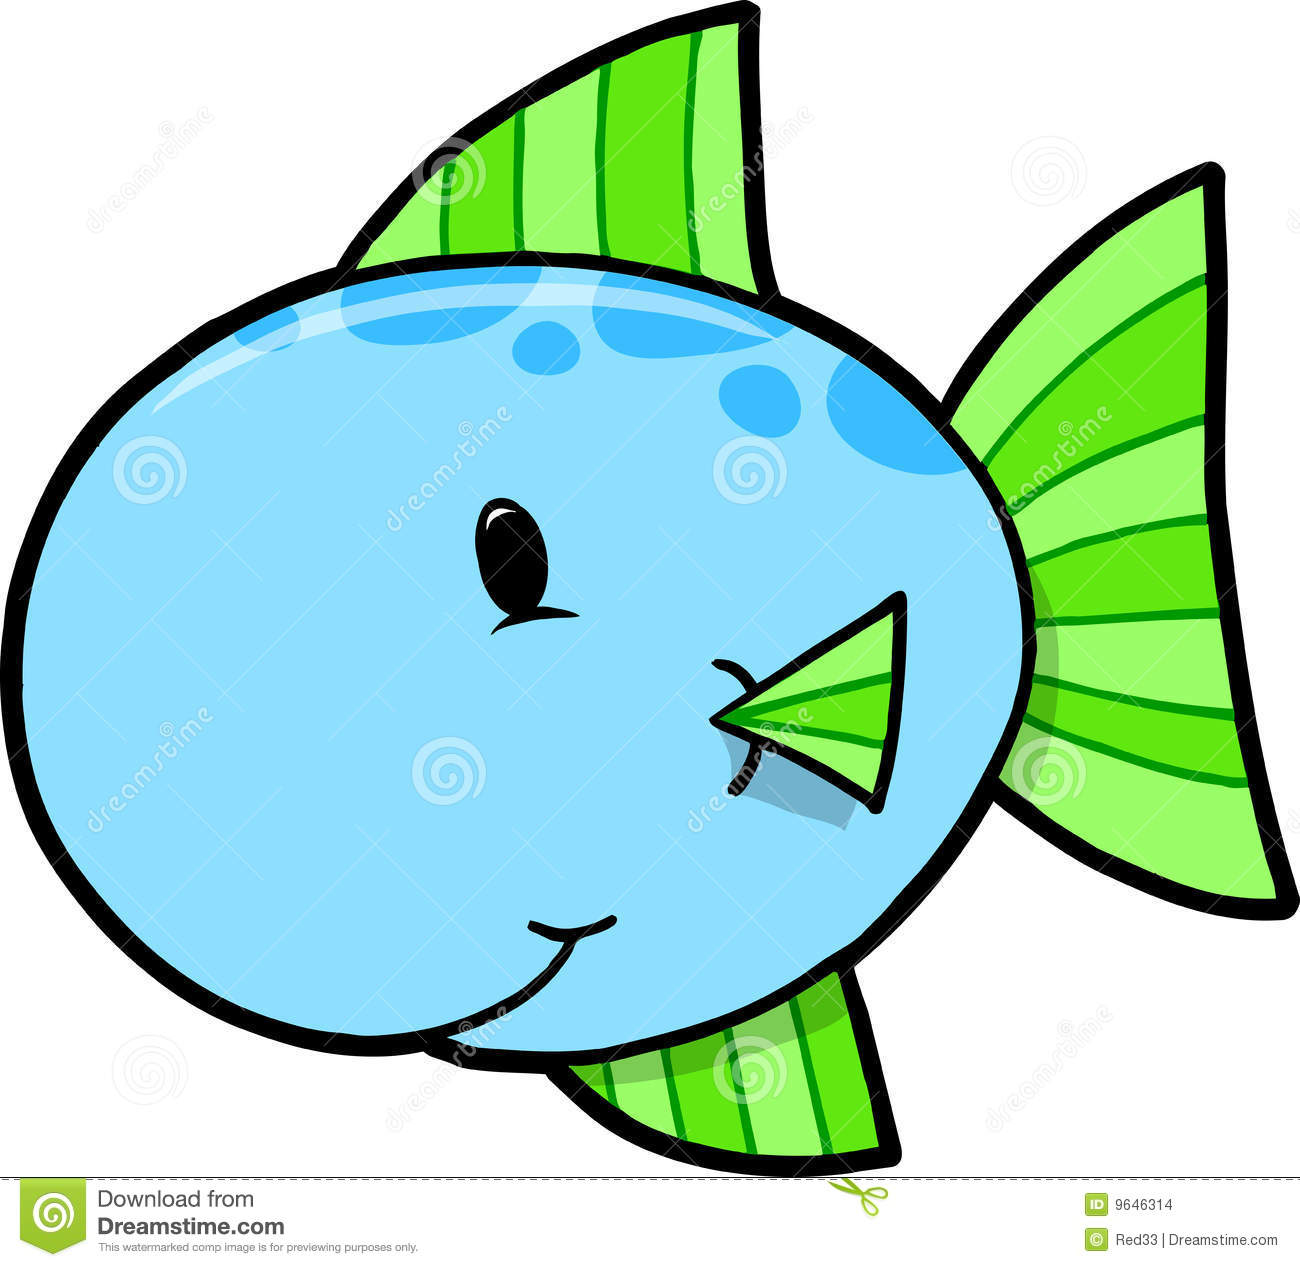 686 Cute Fish free clipart.